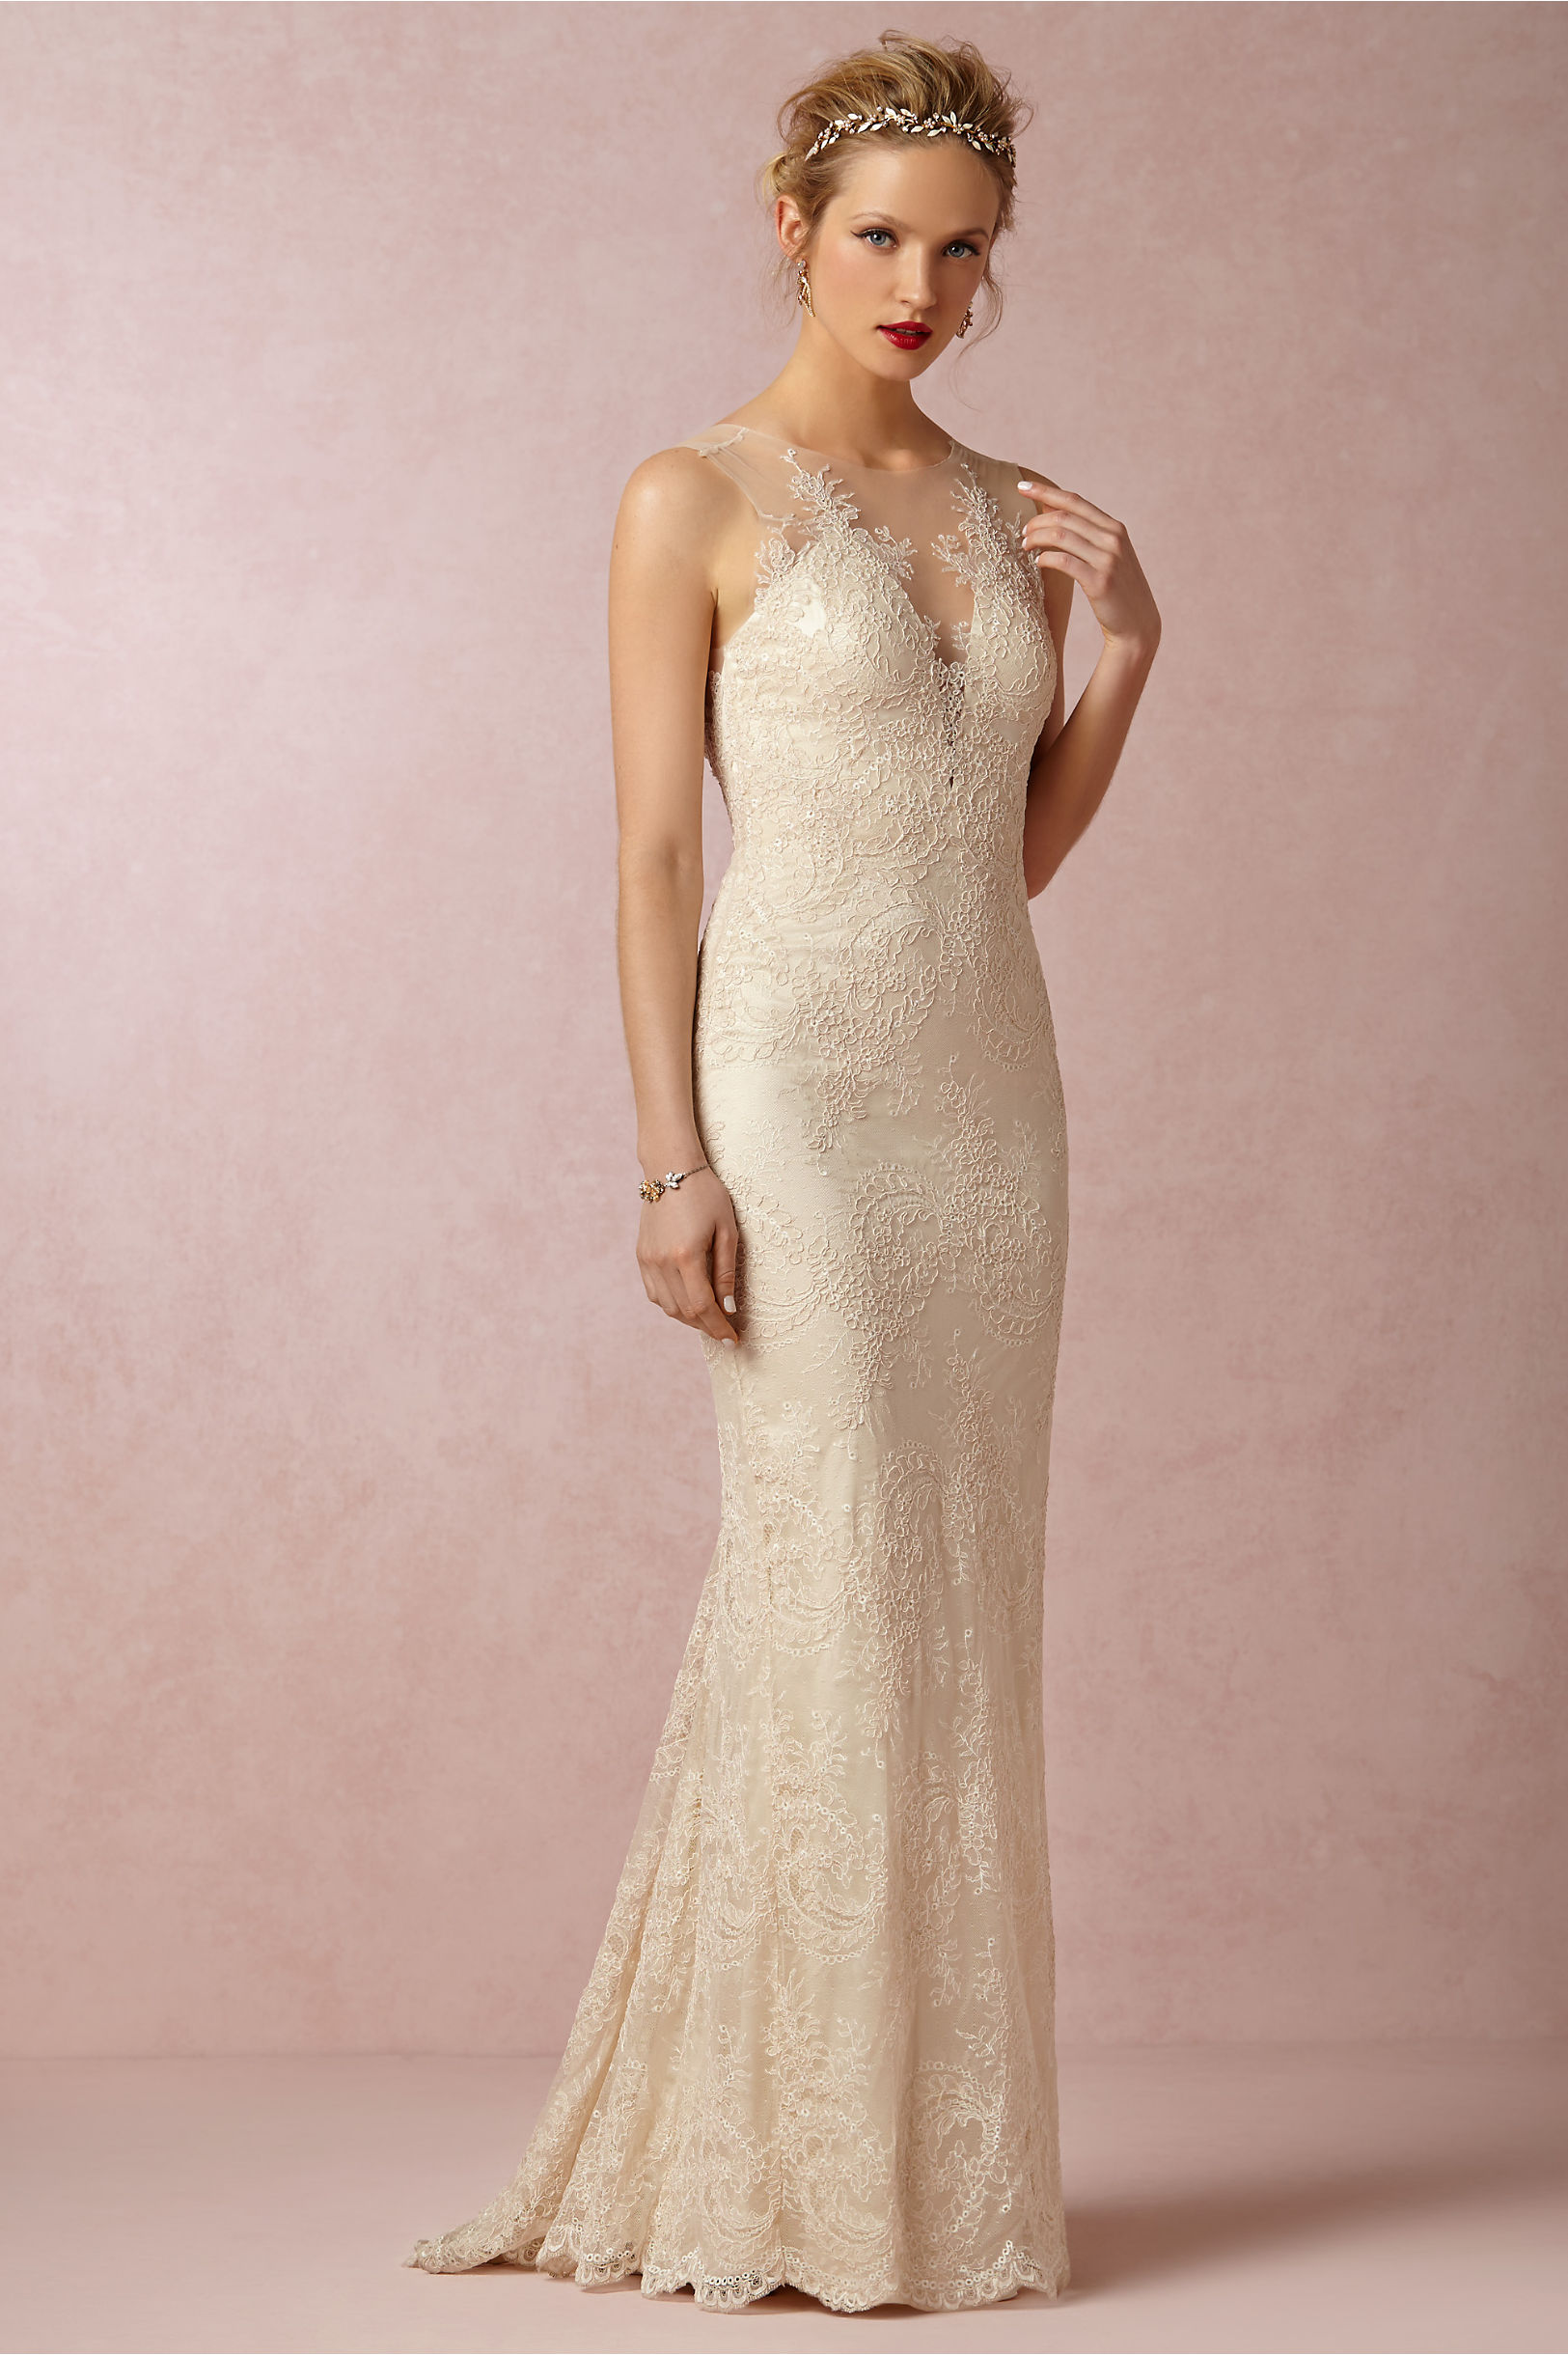 Yasmin Gown in Bride | BHLDN